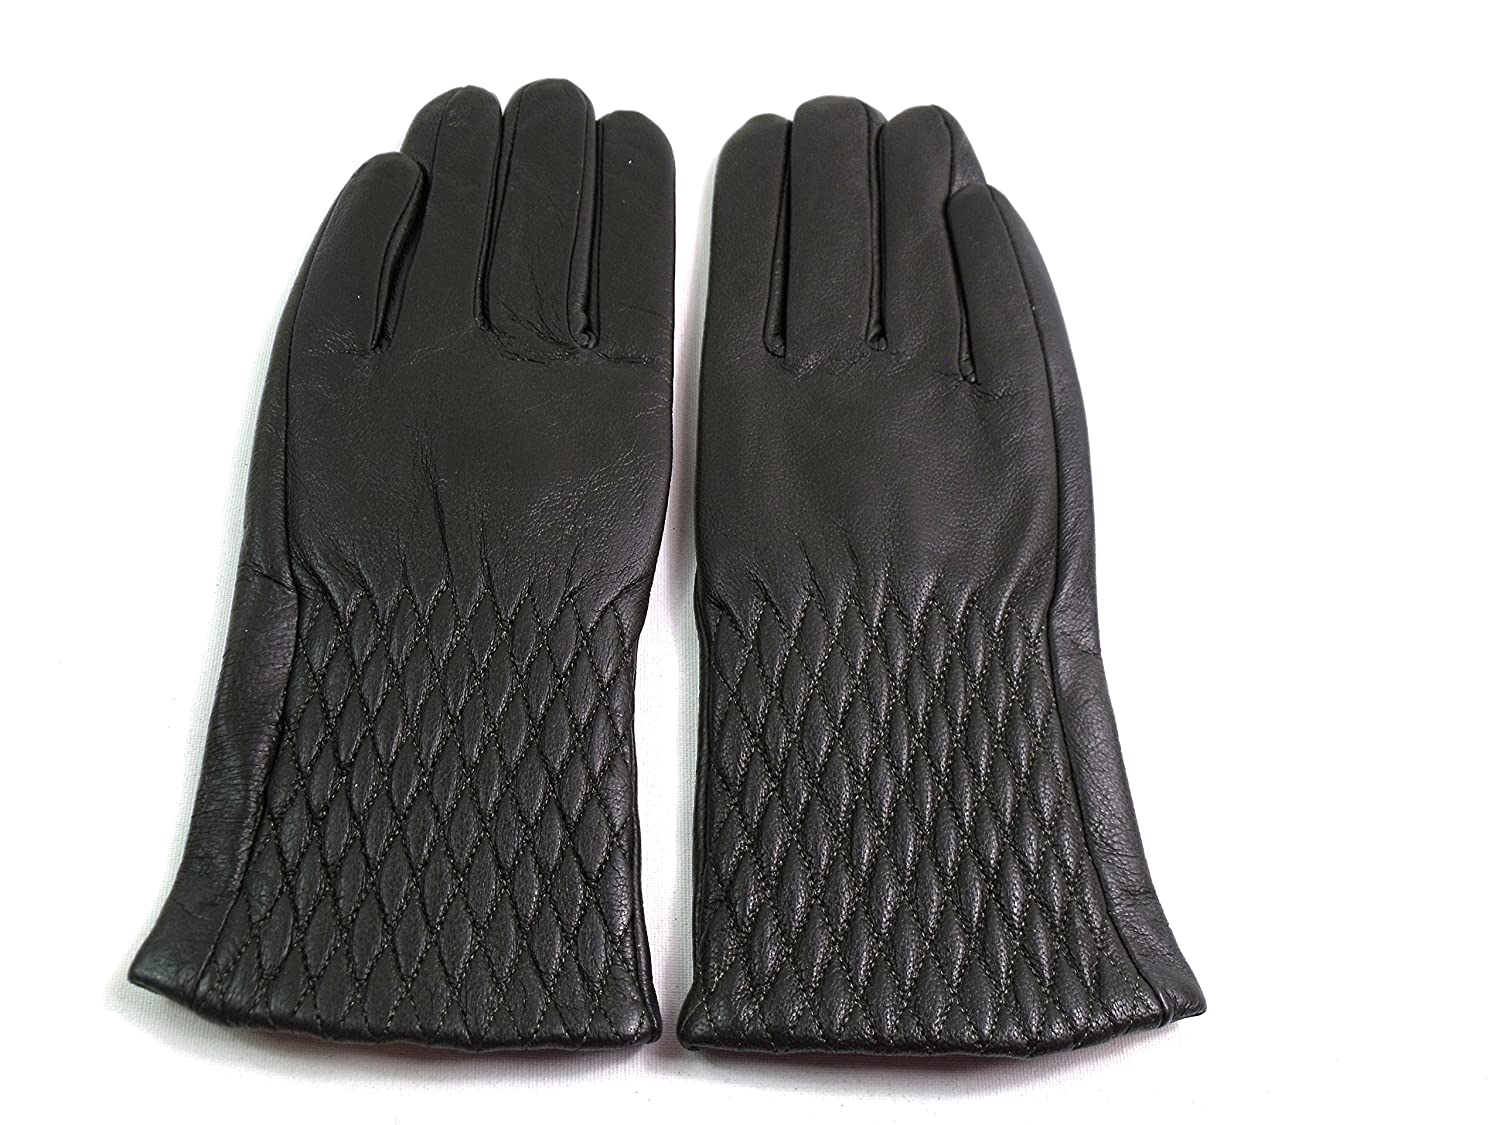 The Leather Emporium Women's Lined Gloves Diamond Detail